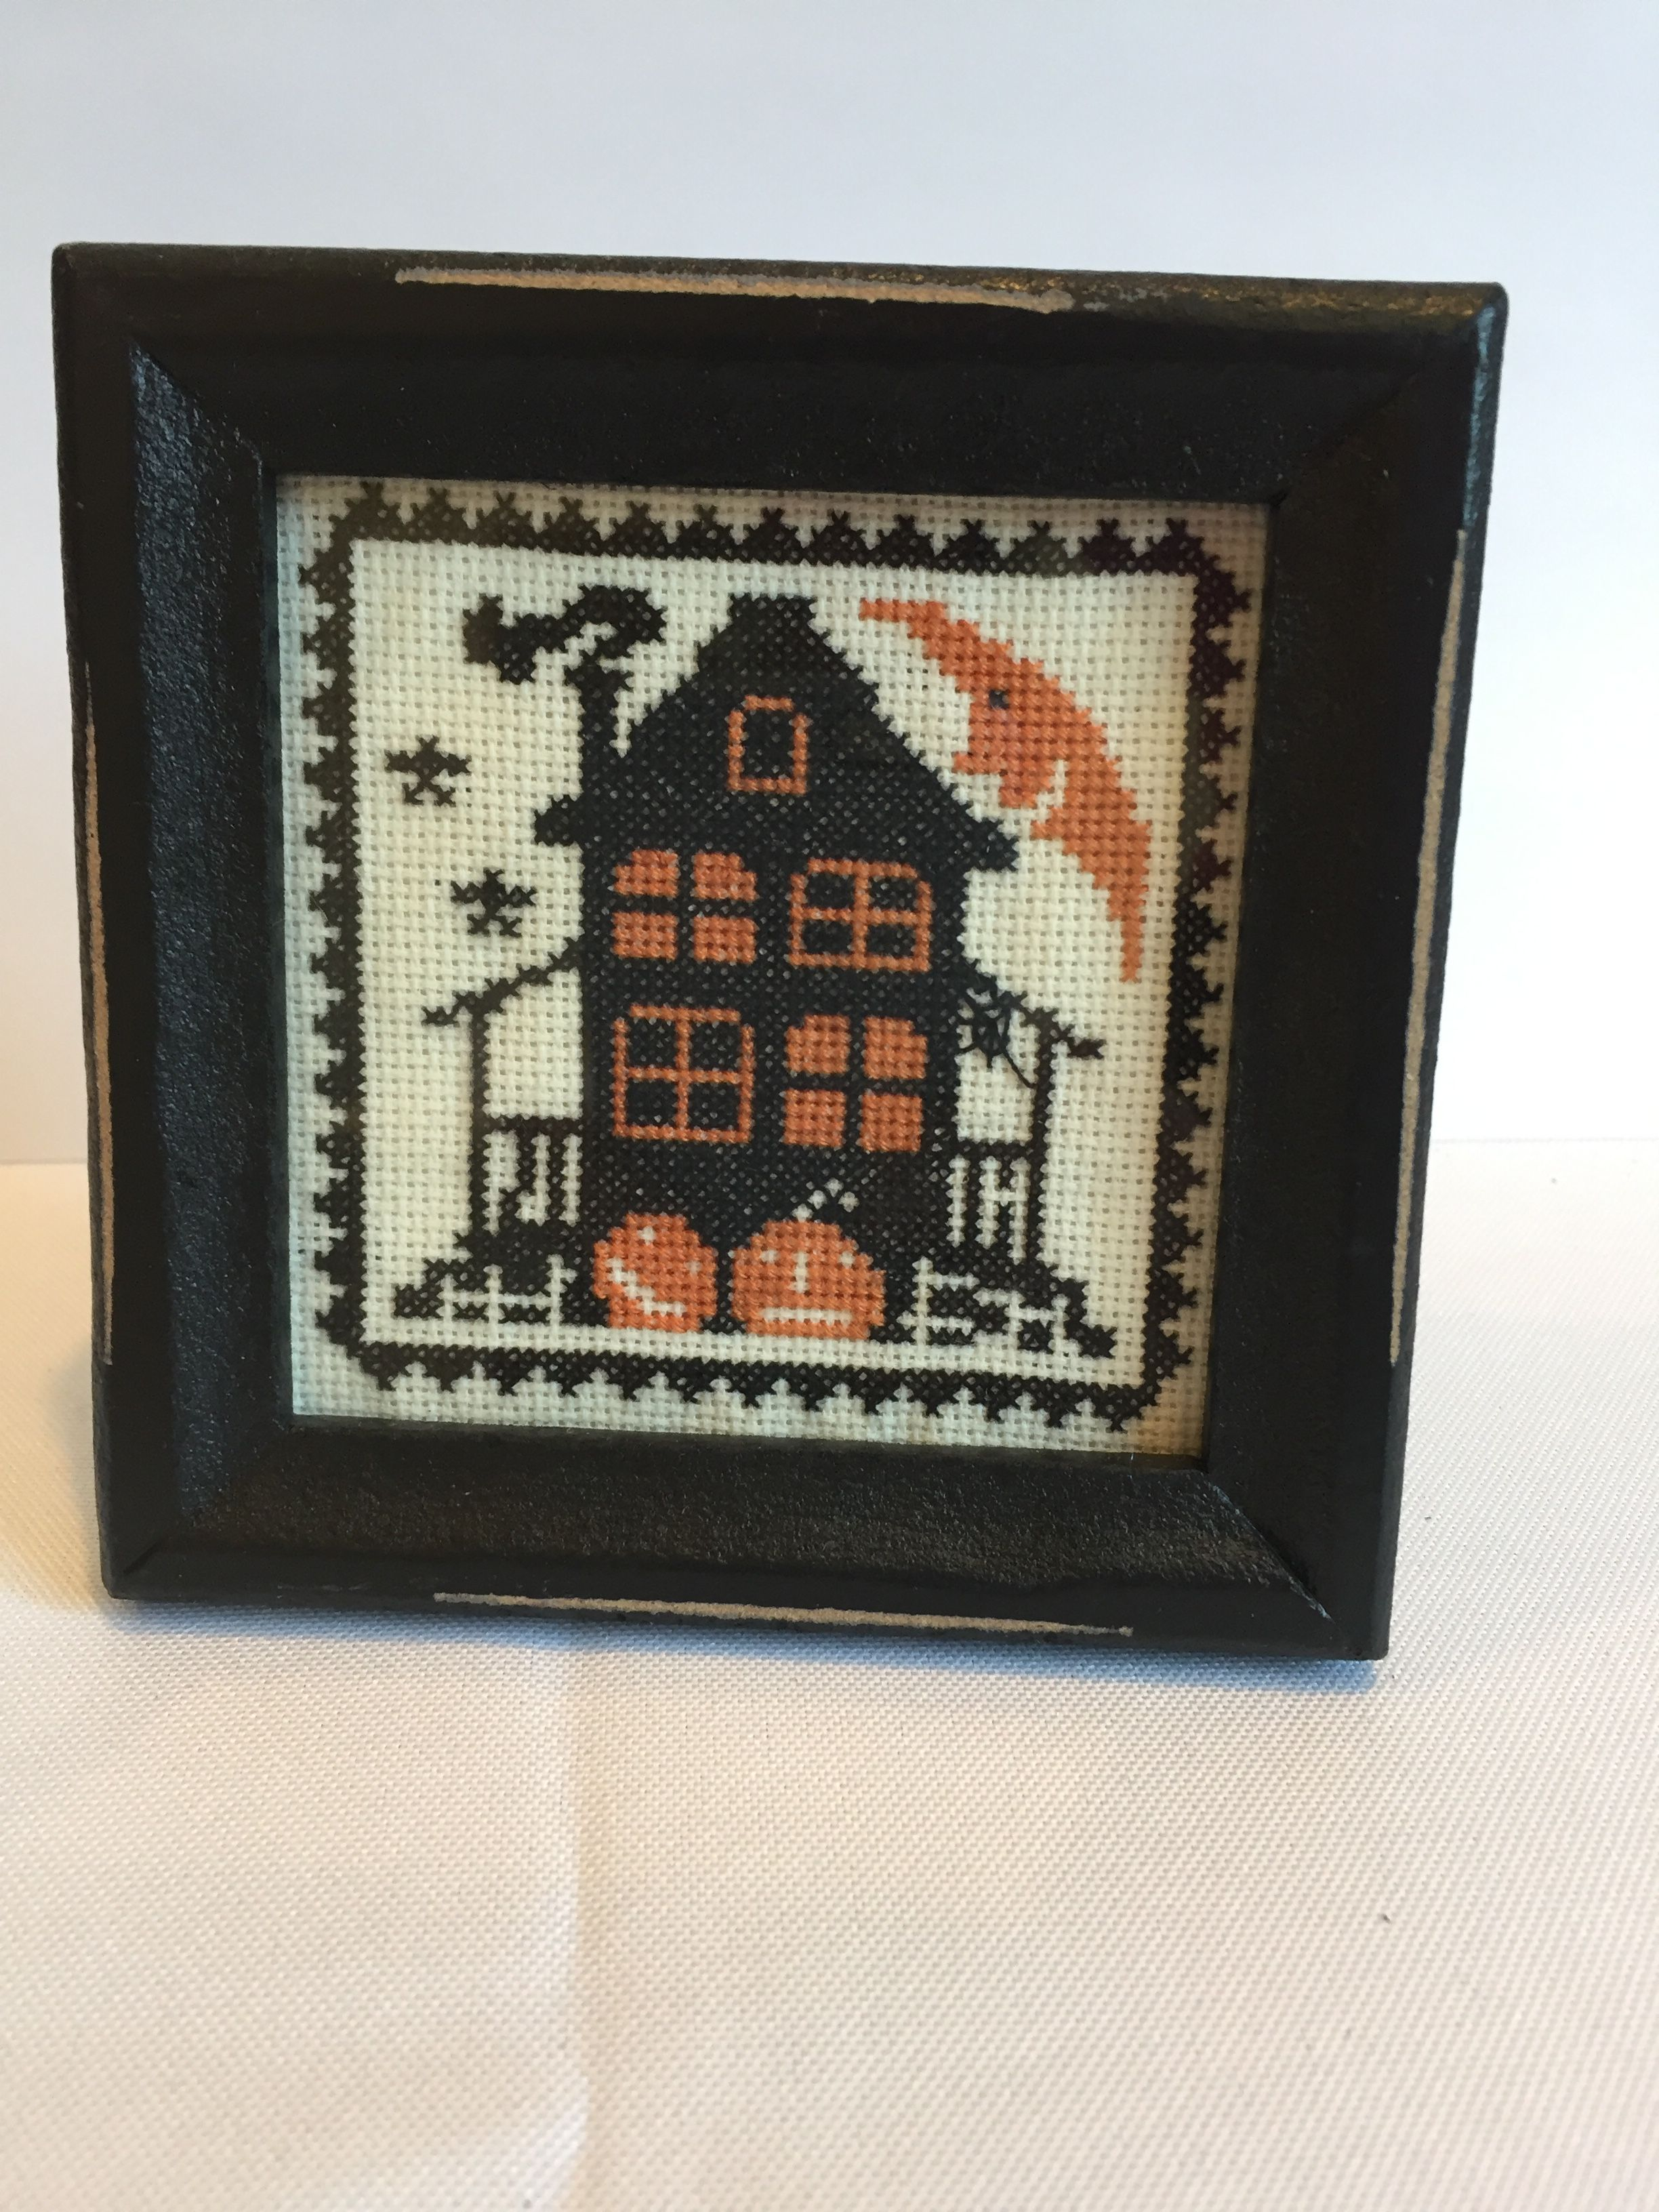 Its Halloween Time Vintage Counted Cross Stitch Pattern Pattern Only, You Provide the Floss and Fabric